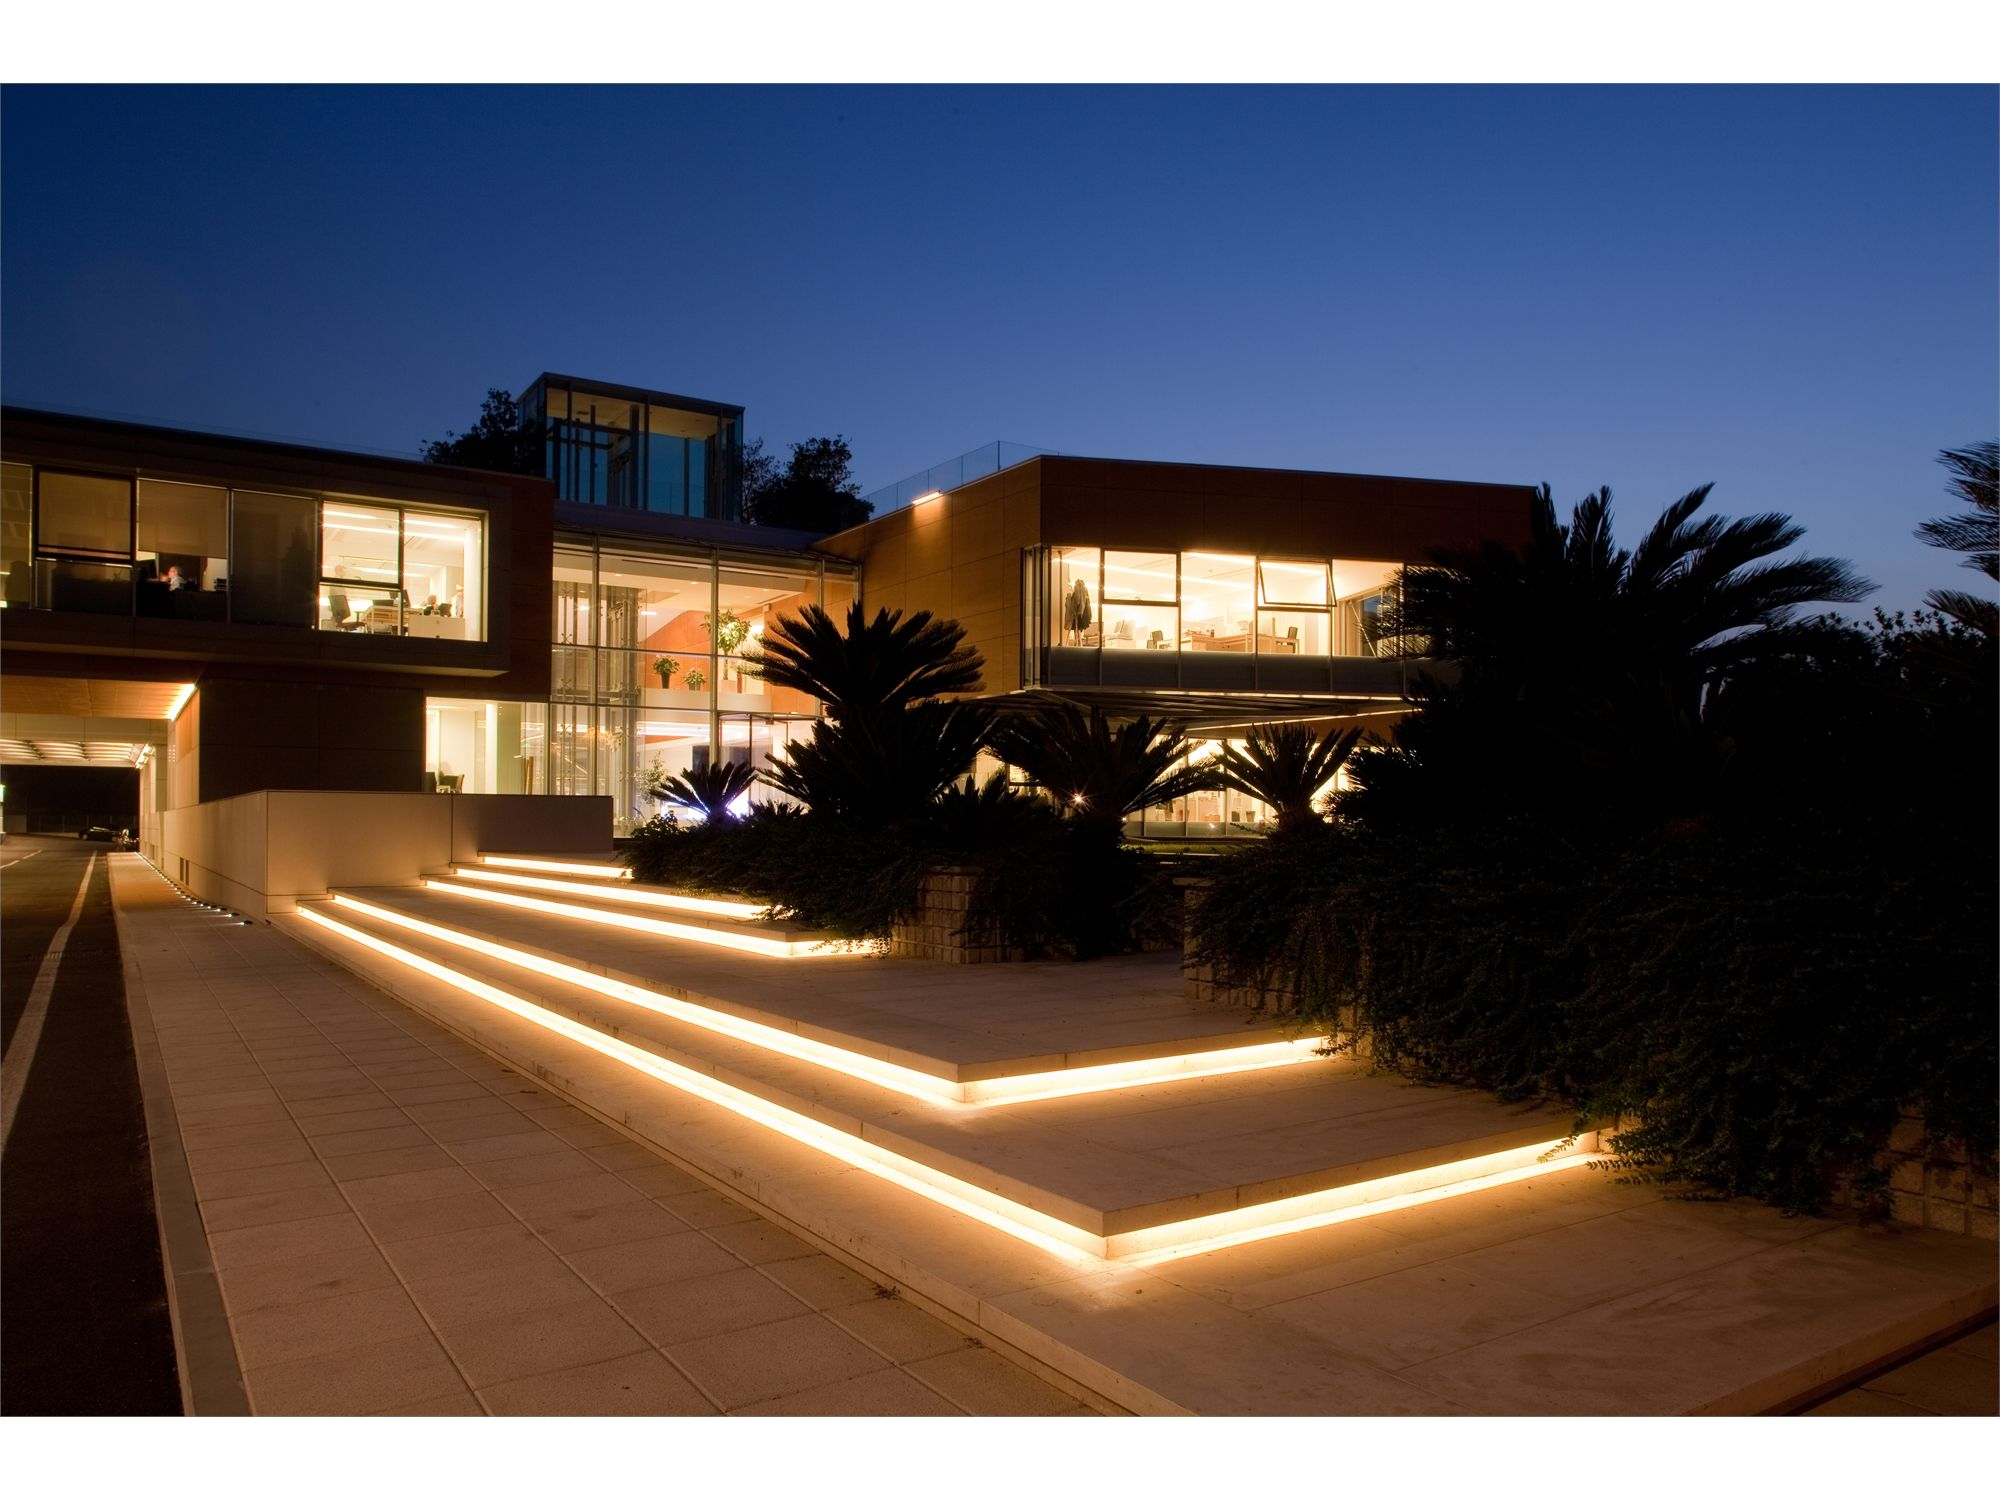 Outdoor Lighting Design Ideas related to landscape lighting lighting outdoor rooms Rainbow New Headquarters In Loreto Italy Lighting Products Iguzzini Illuminazione Photographed By